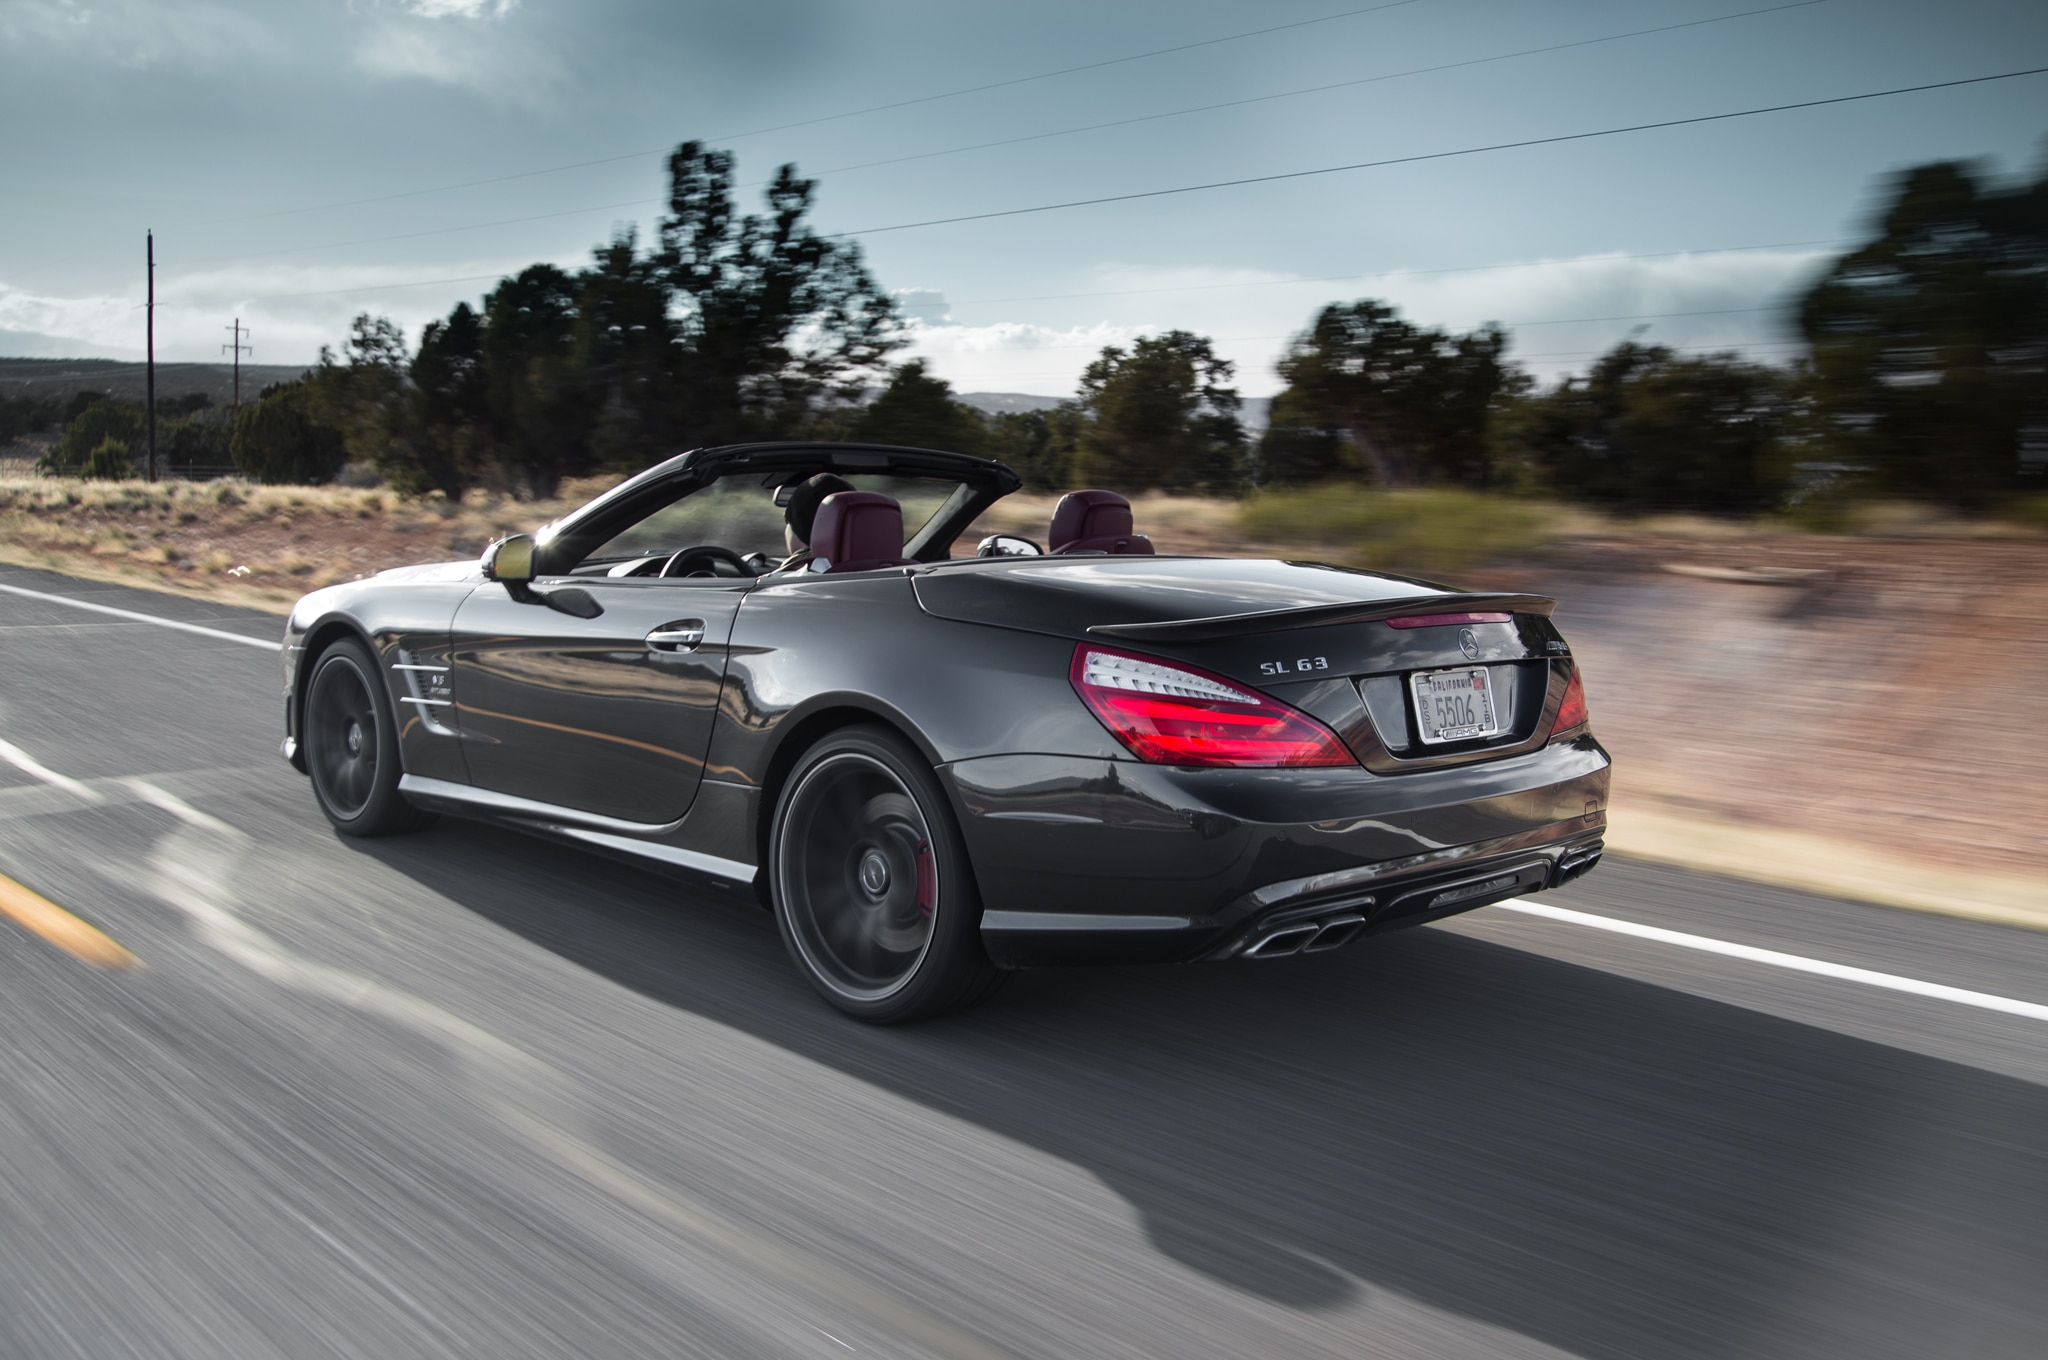 Mercedes benz partners with garmin for navigation systems for Mercedes benz amg sl63